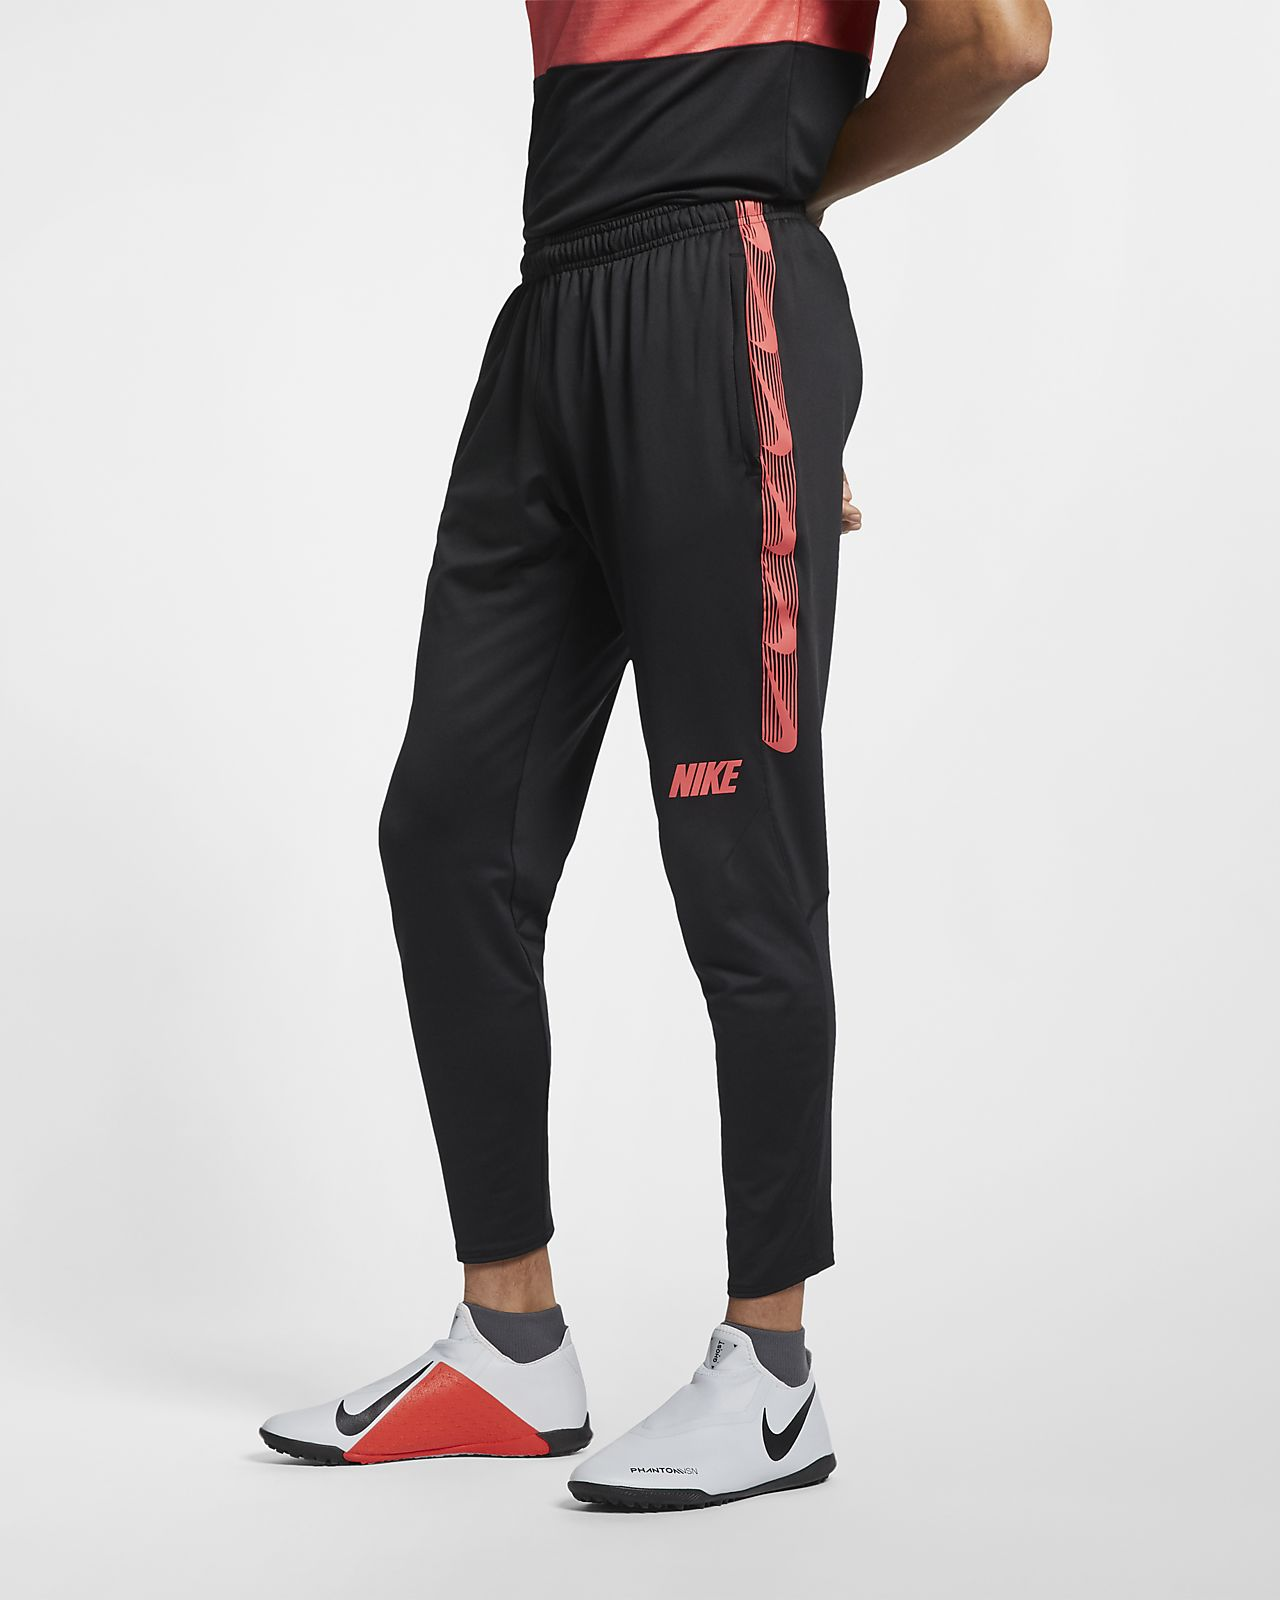 Nike Dri-FIT Squad Men's Football Pants